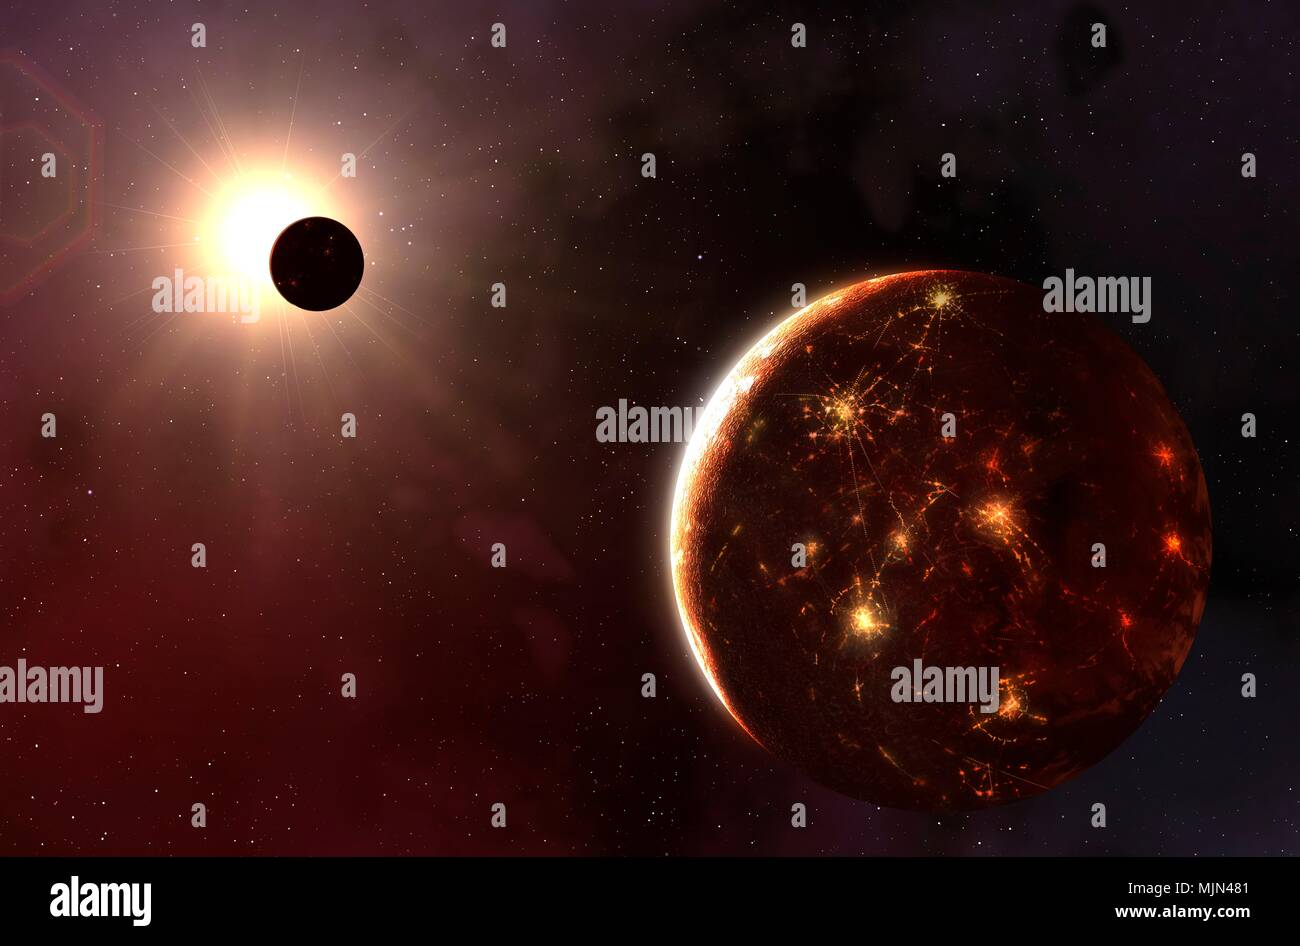 Artwork of alien technological planet. The planet is in orbit around a red dwarf star, the most common type. The red dwarf is relatively sedate, making the environment of its habitable zone conducive to life. The planet is shown with its night side brilliantly lit by major cites and technology. - Stock Image